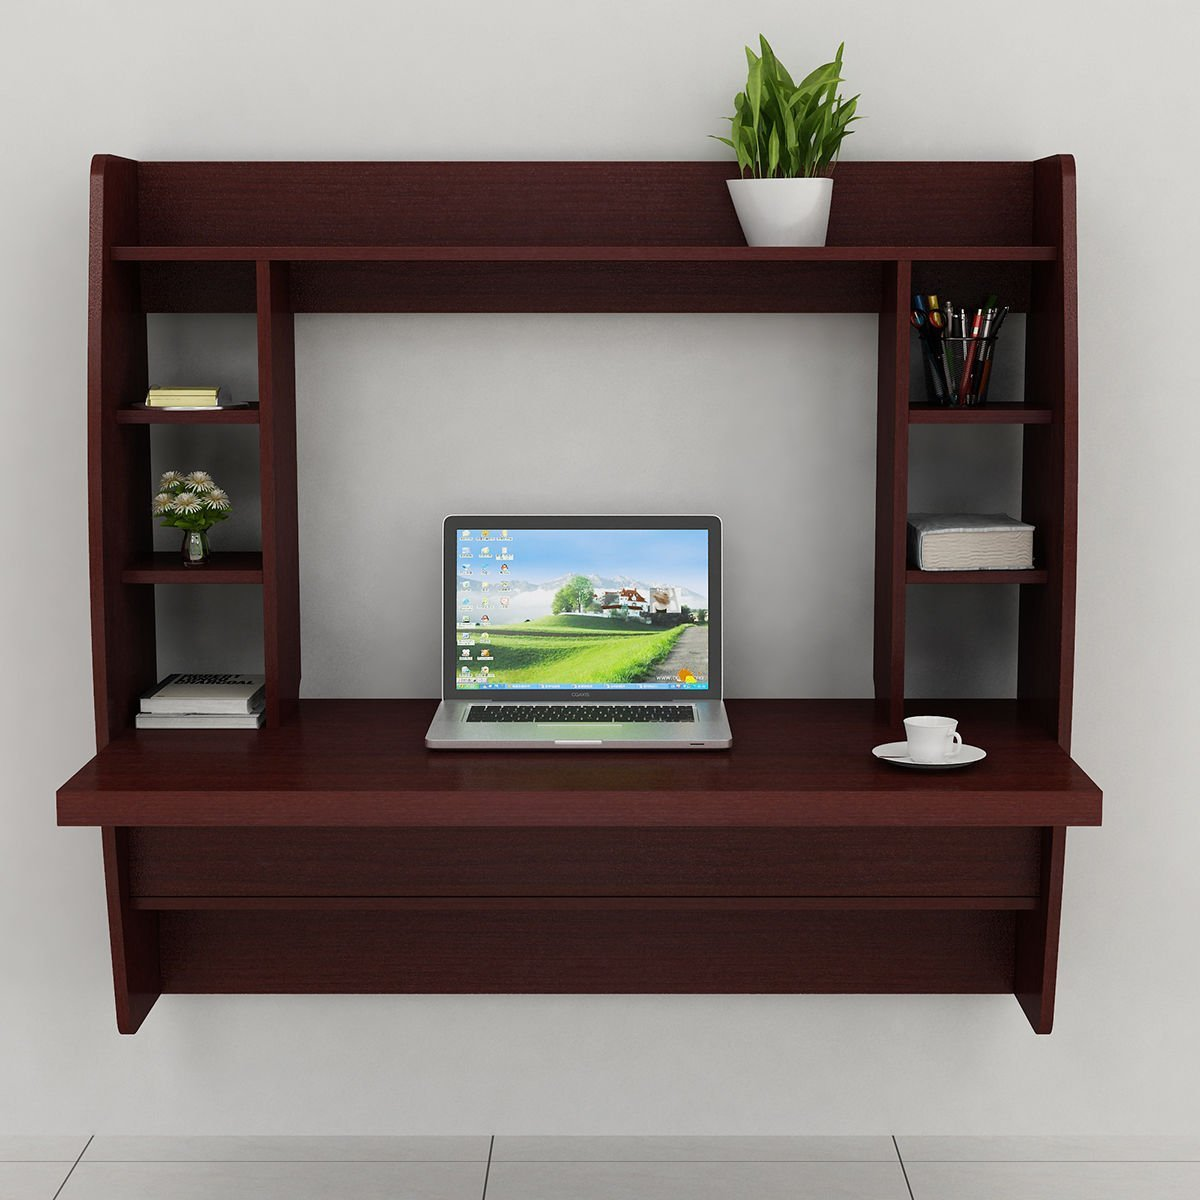 New Floating Wall Mount Computer Desk Storage Two Shelf Laptop Computer Home